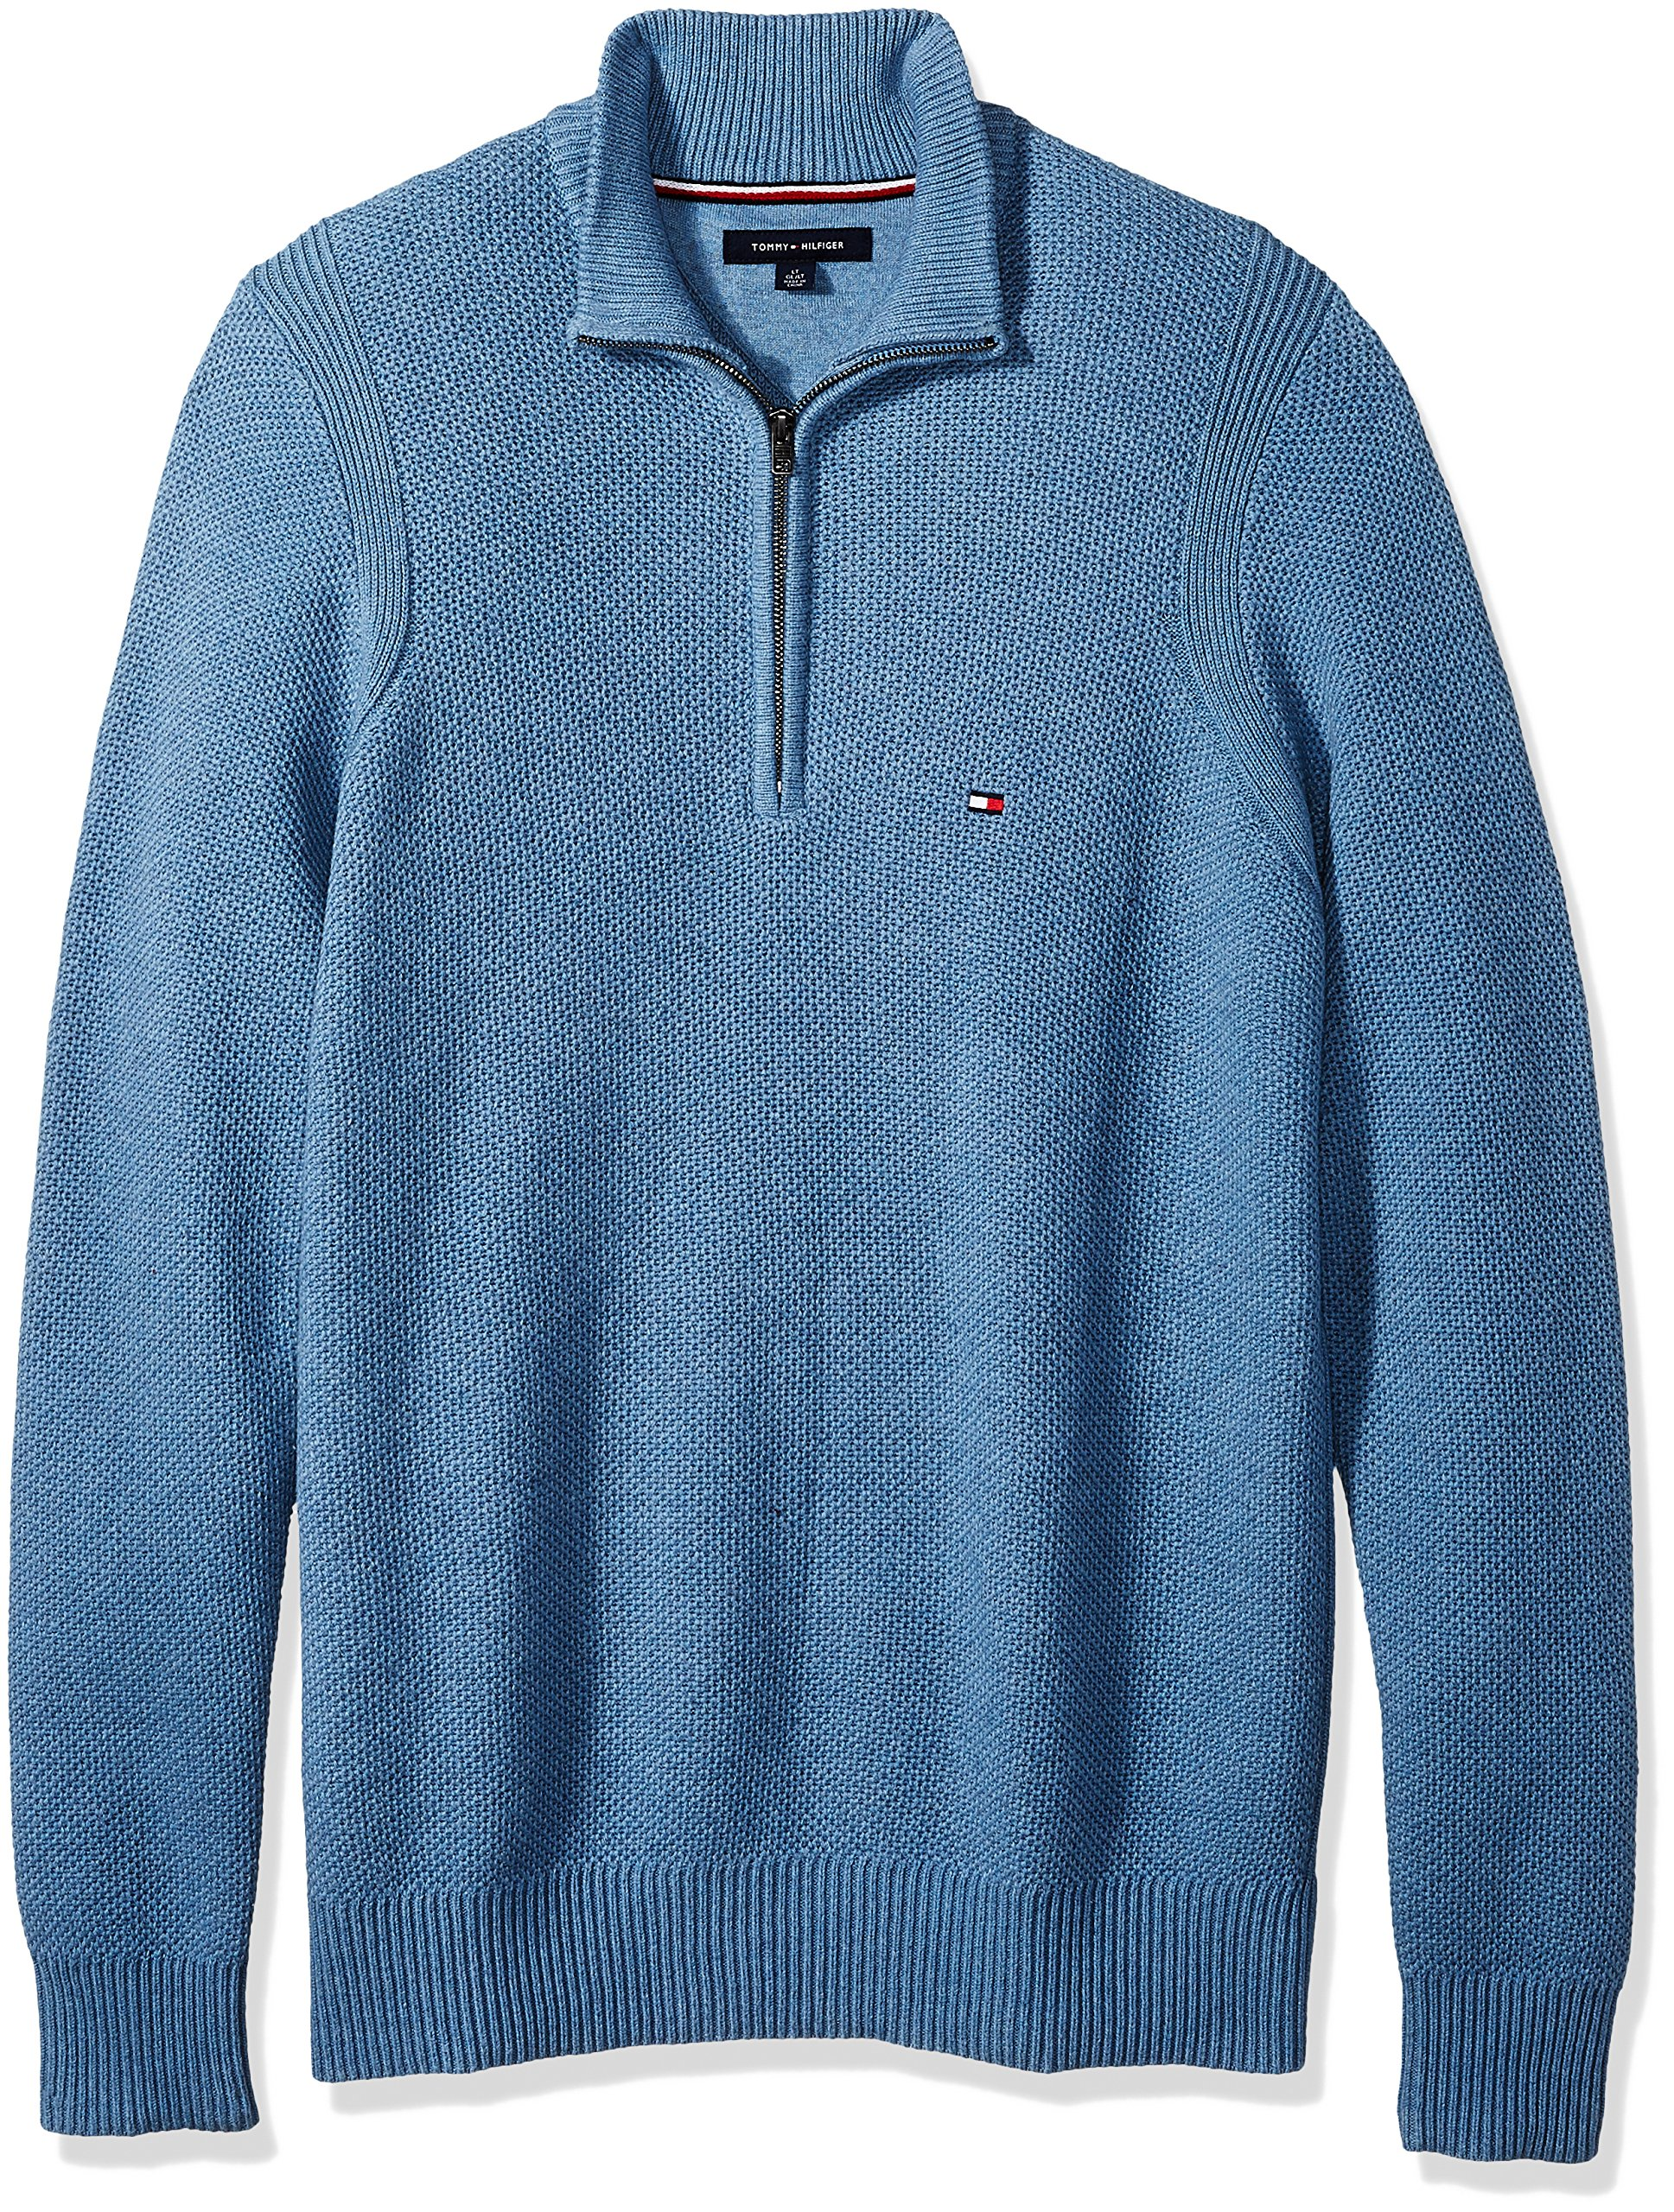 Tommy Hilfiger Men's Big and Tall 1/4 Zip Pullover Sweater, Medium Chambray Heather, TL-3XL